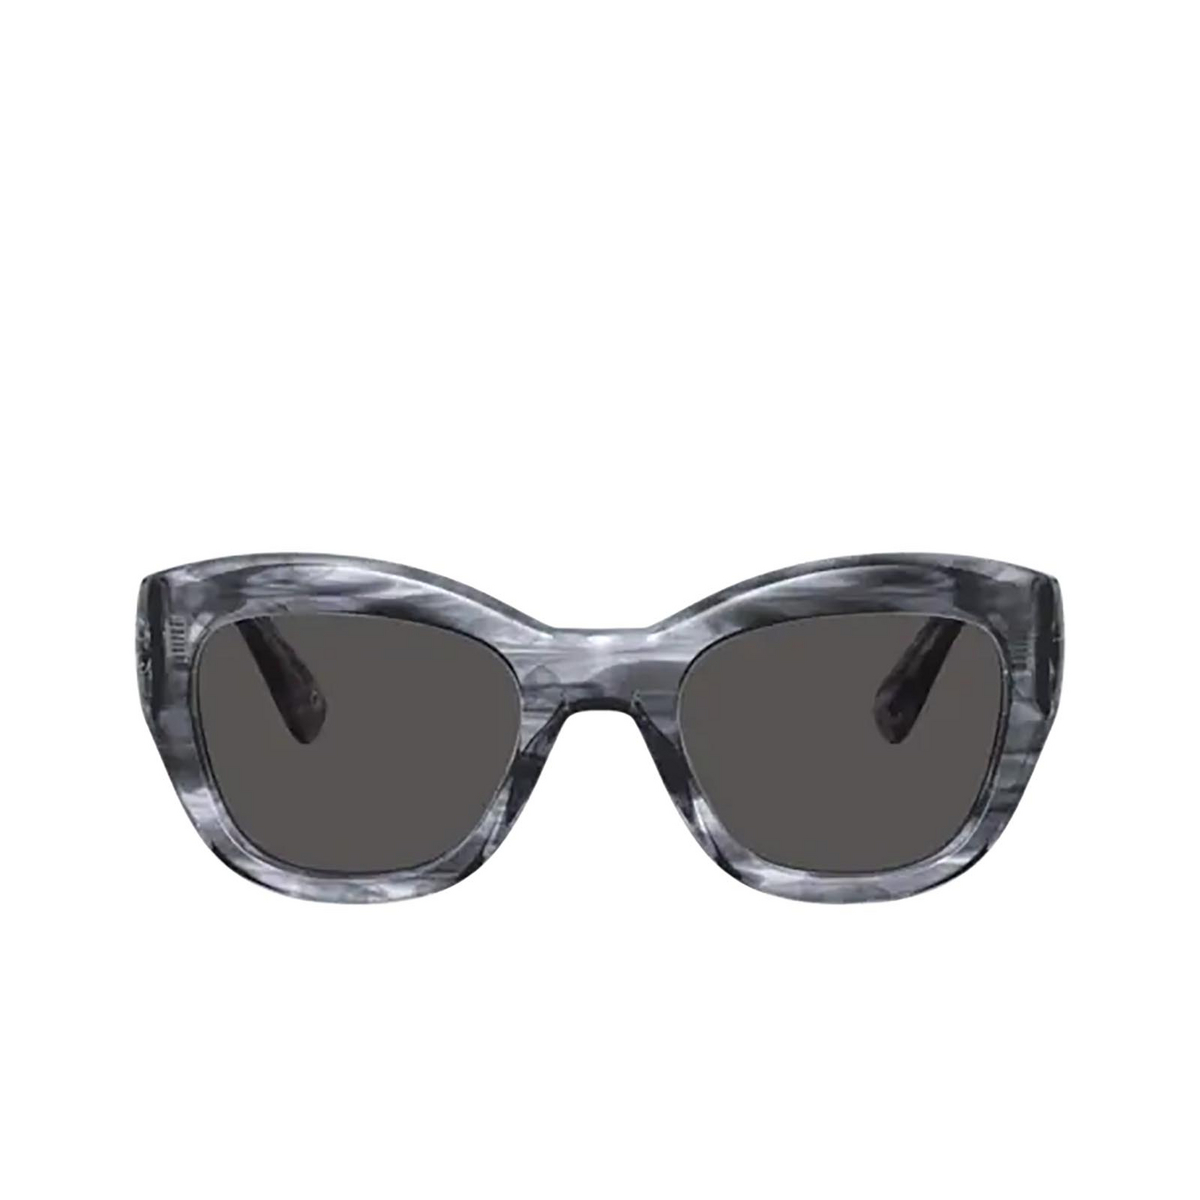 Oliver Peoples® Butterfly Sunglasses: Lalit OV5430SU color Navy Smoke 168887 - front view.